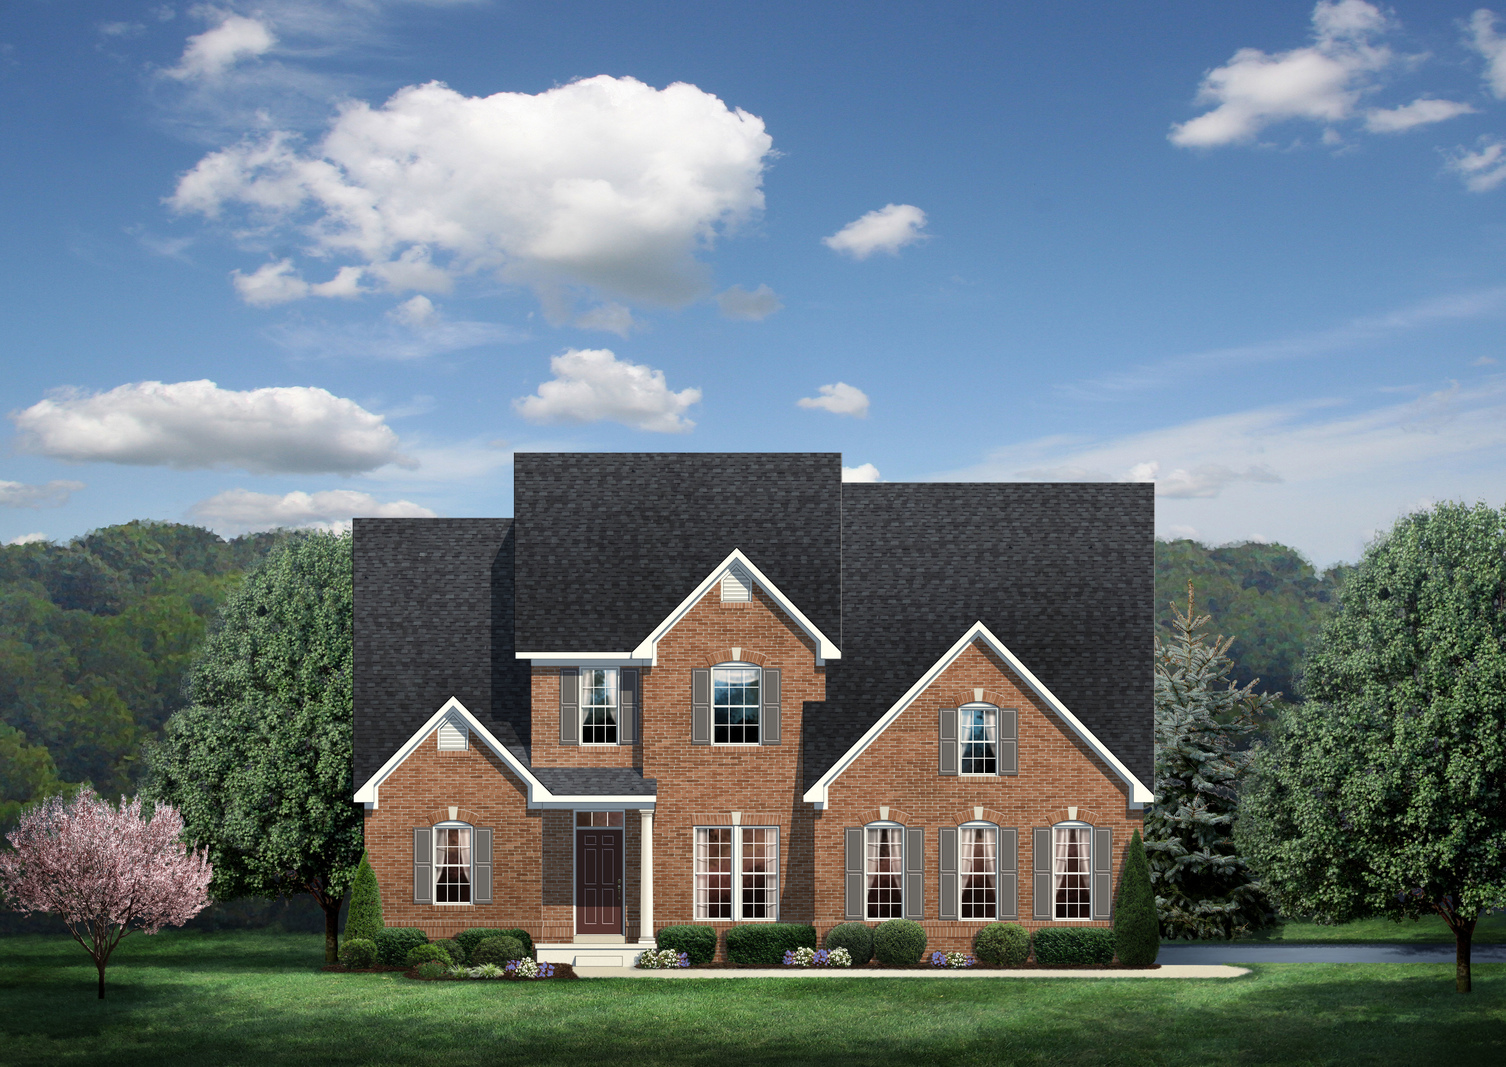 New Construction Single Family Homes For Sale Ravenna: New Construction Single-Family Homes For Sale -Sheffield